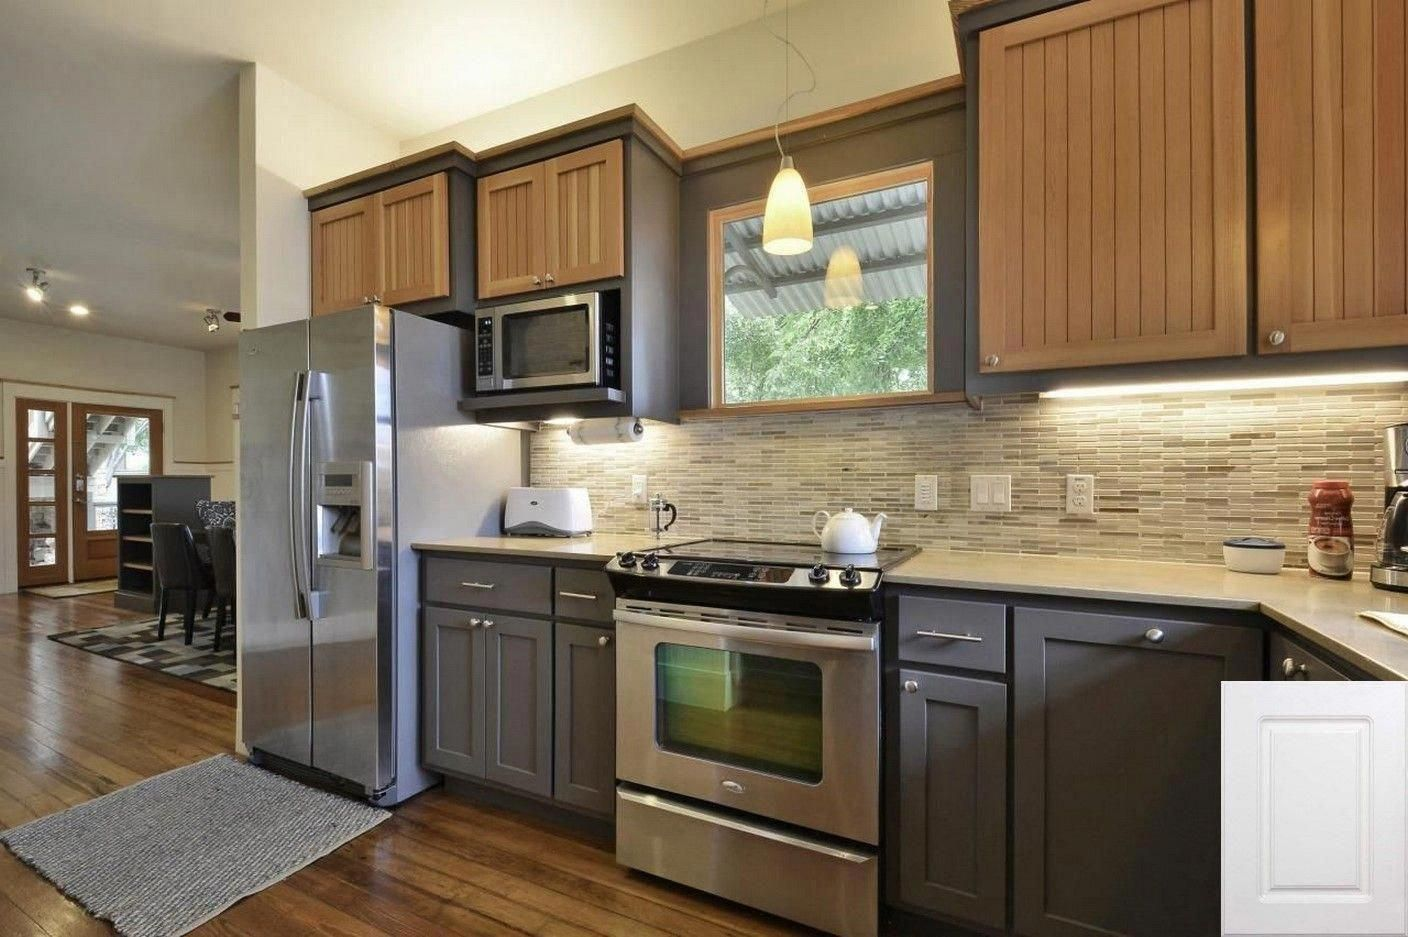 Should I Paint My Cabinets Or Replace Them Painting Kitchen Cabinets Greige K In 2020 Kitchen Cabinet Trends Kitchen Cabinet Colors Different Color Kitchen Cabinets